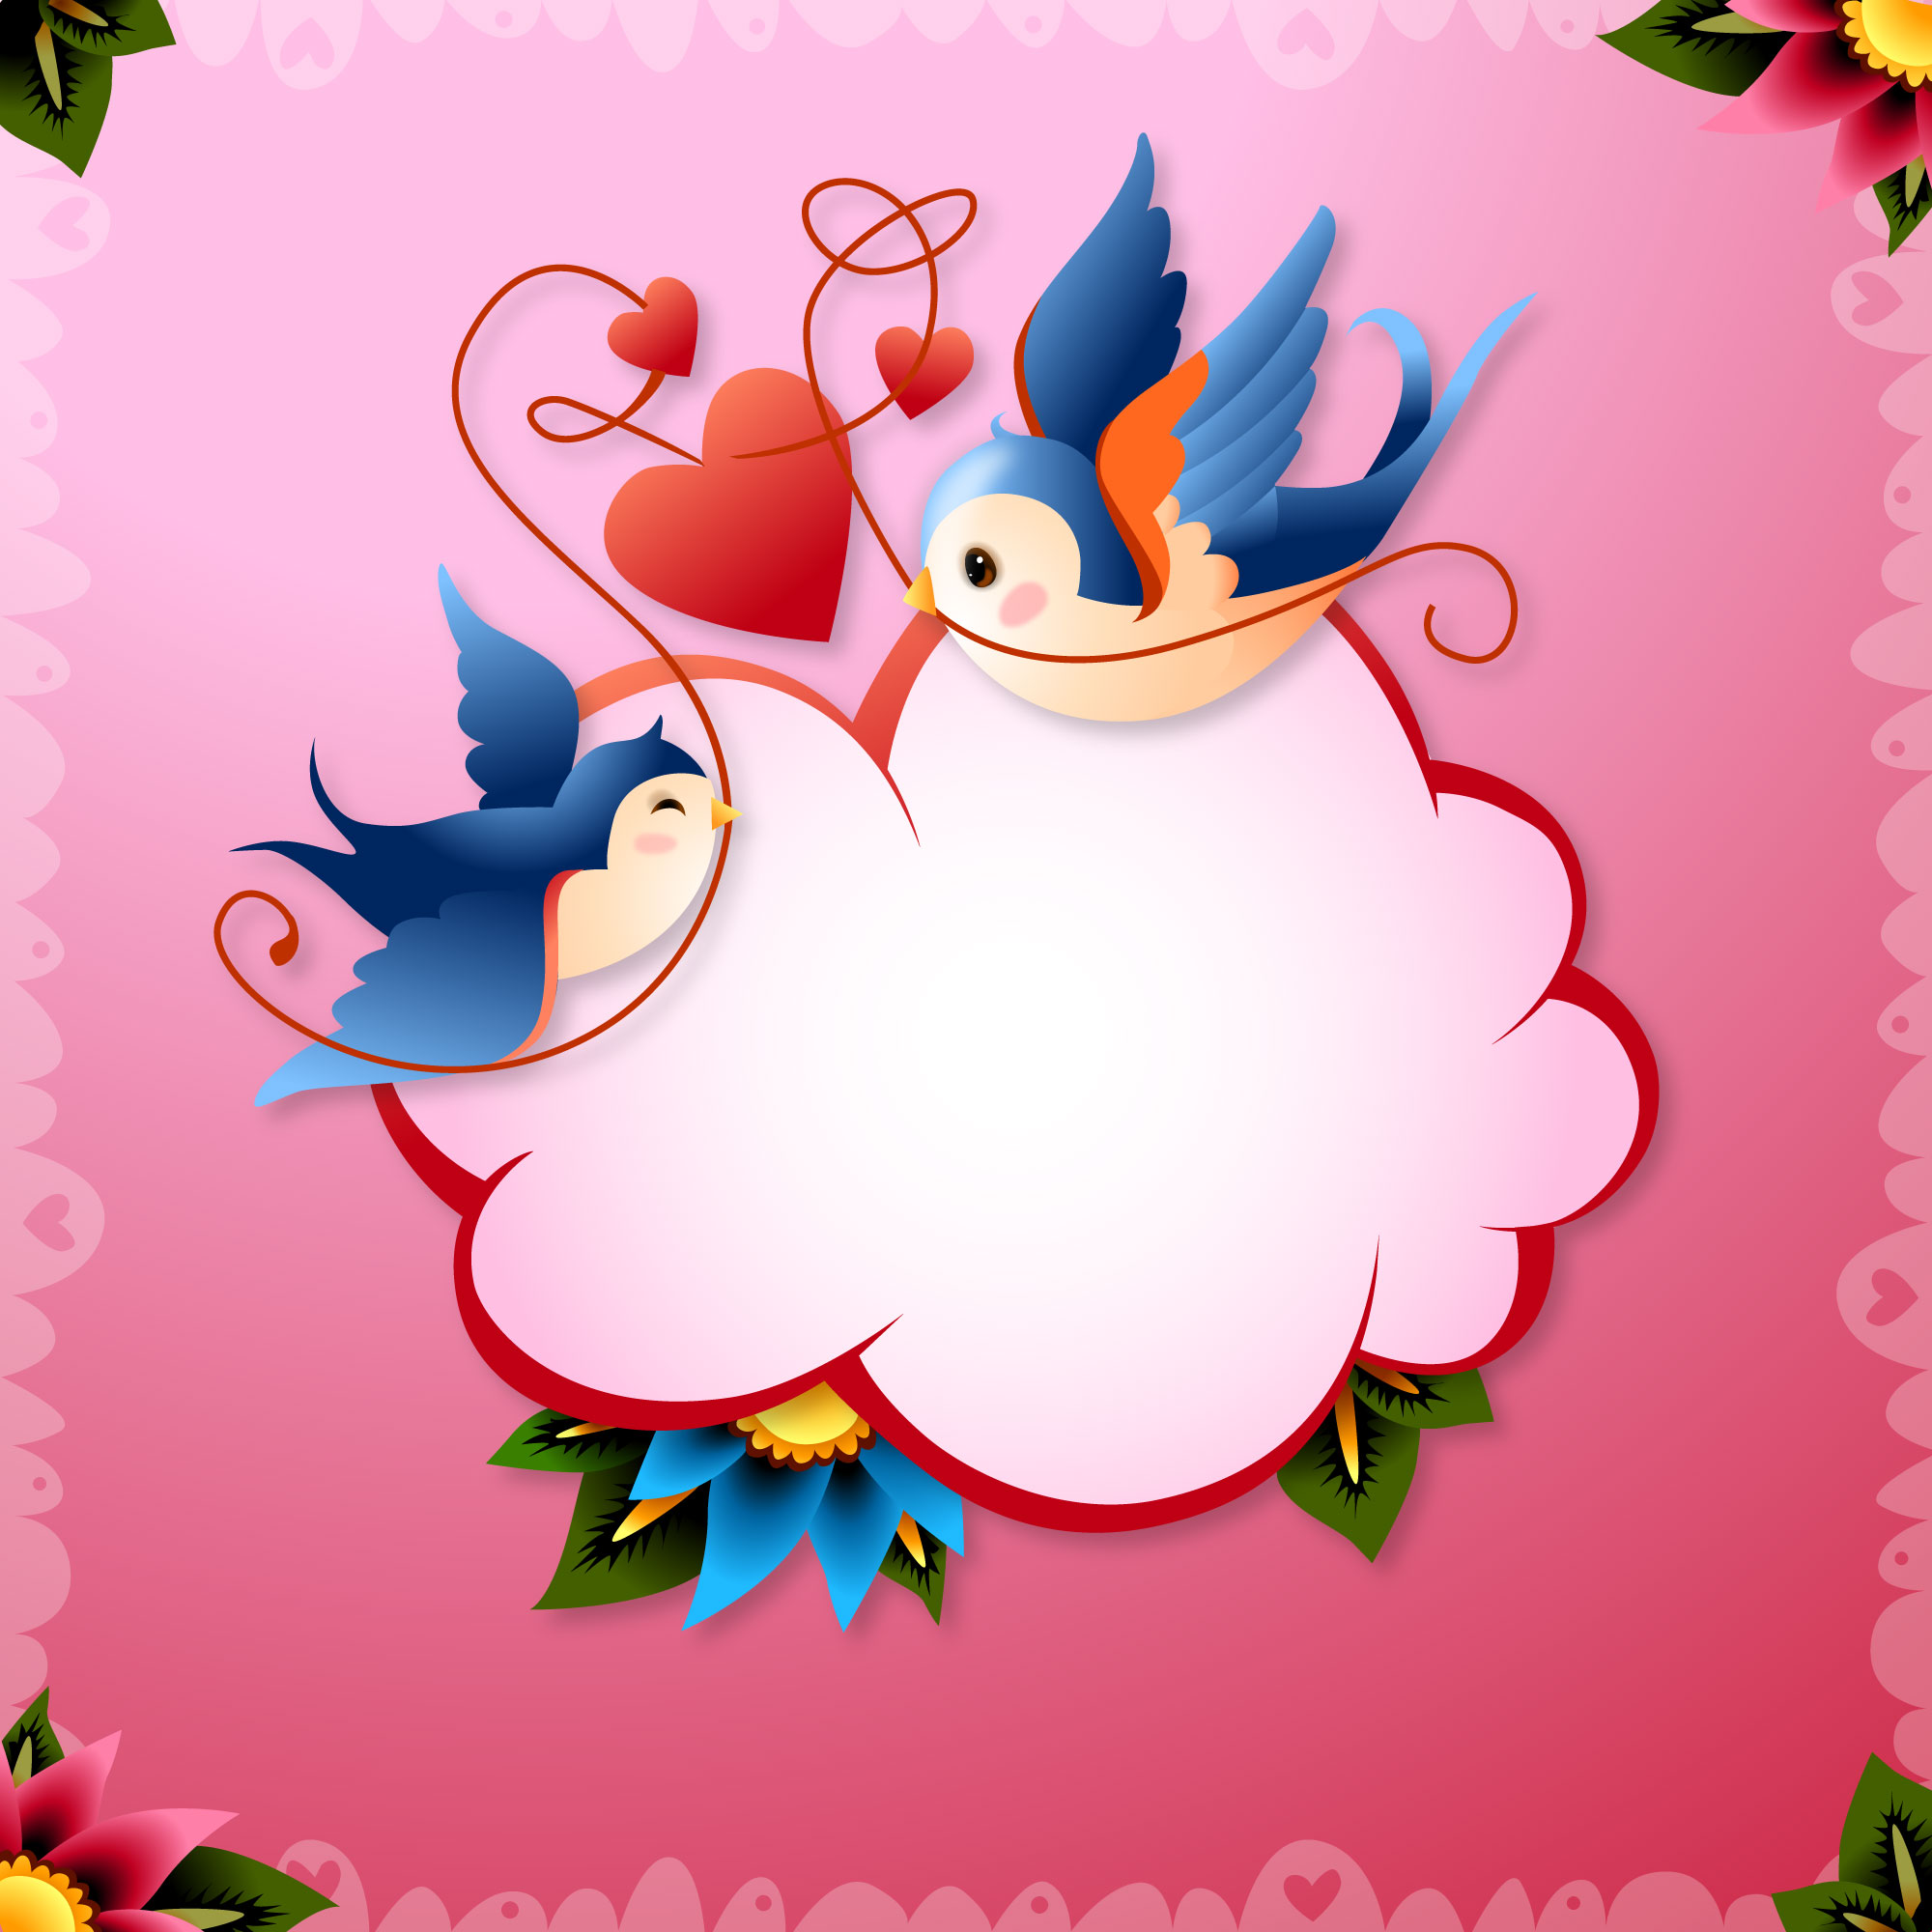 Valentine's Day Love Birds with Hearts and Word Balloon Vector Illustration